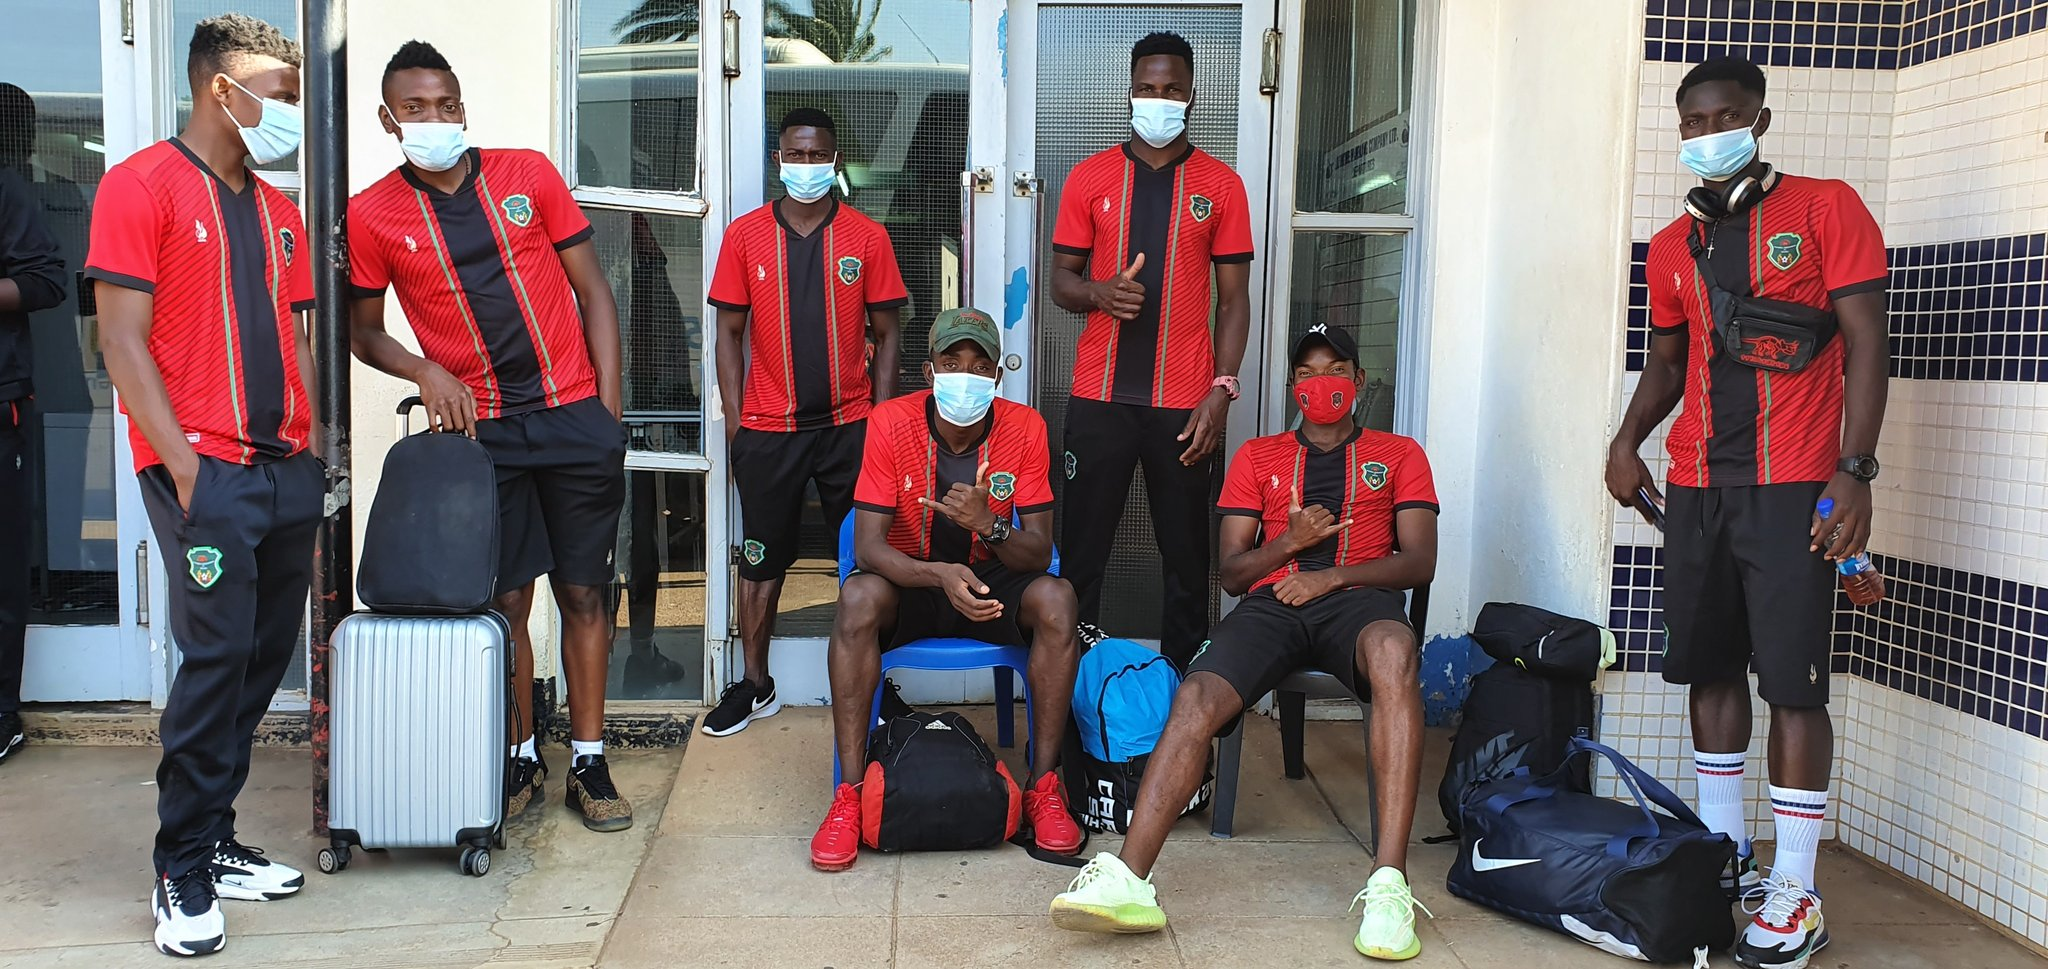 Mzava ruled out, Flames stuck in SA, Mwase confident.